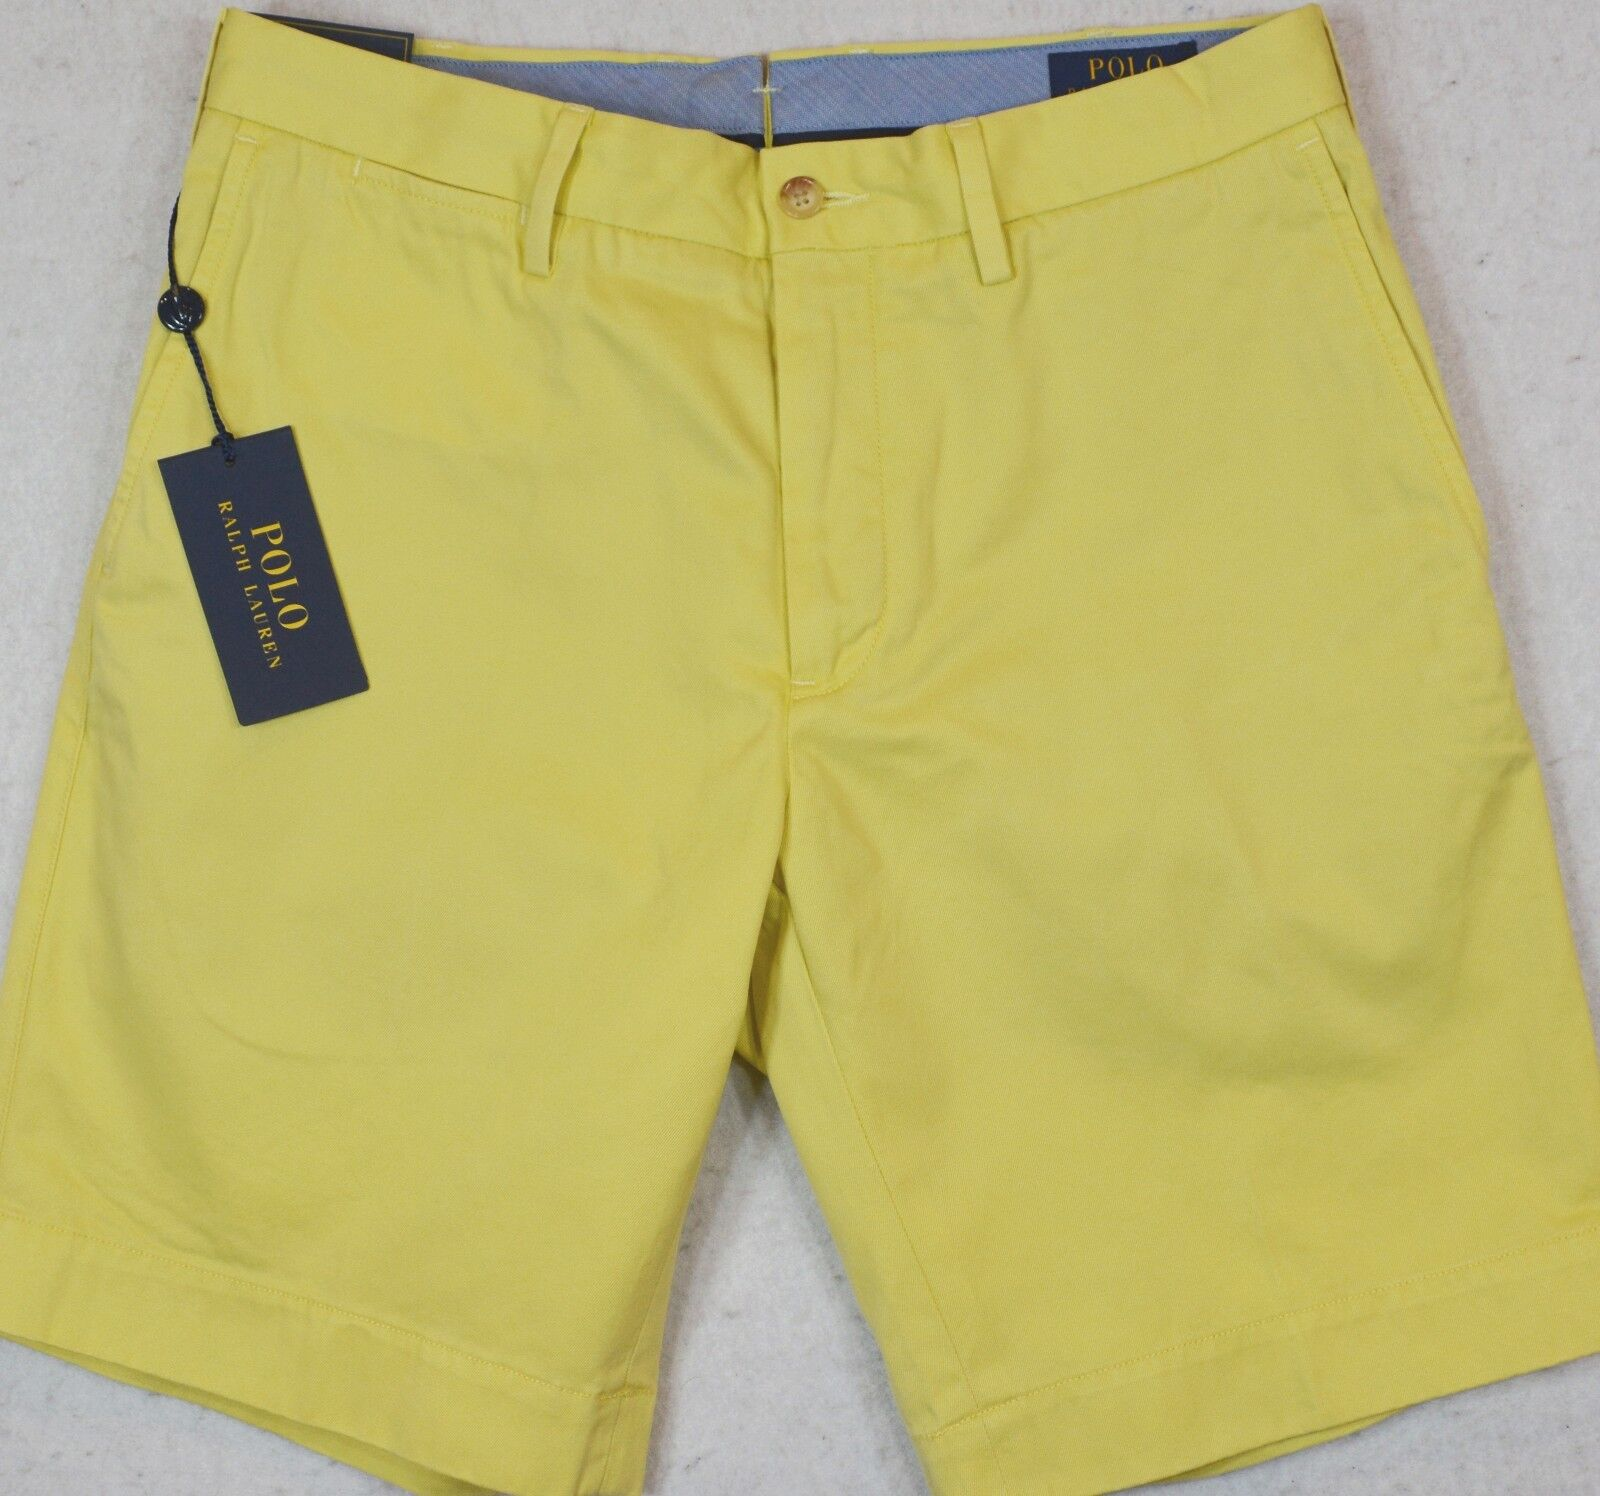 Polo Ralph Lauren Shorts Pima Cotton Classic Fit 9  Yellow 30 33 34 NWT